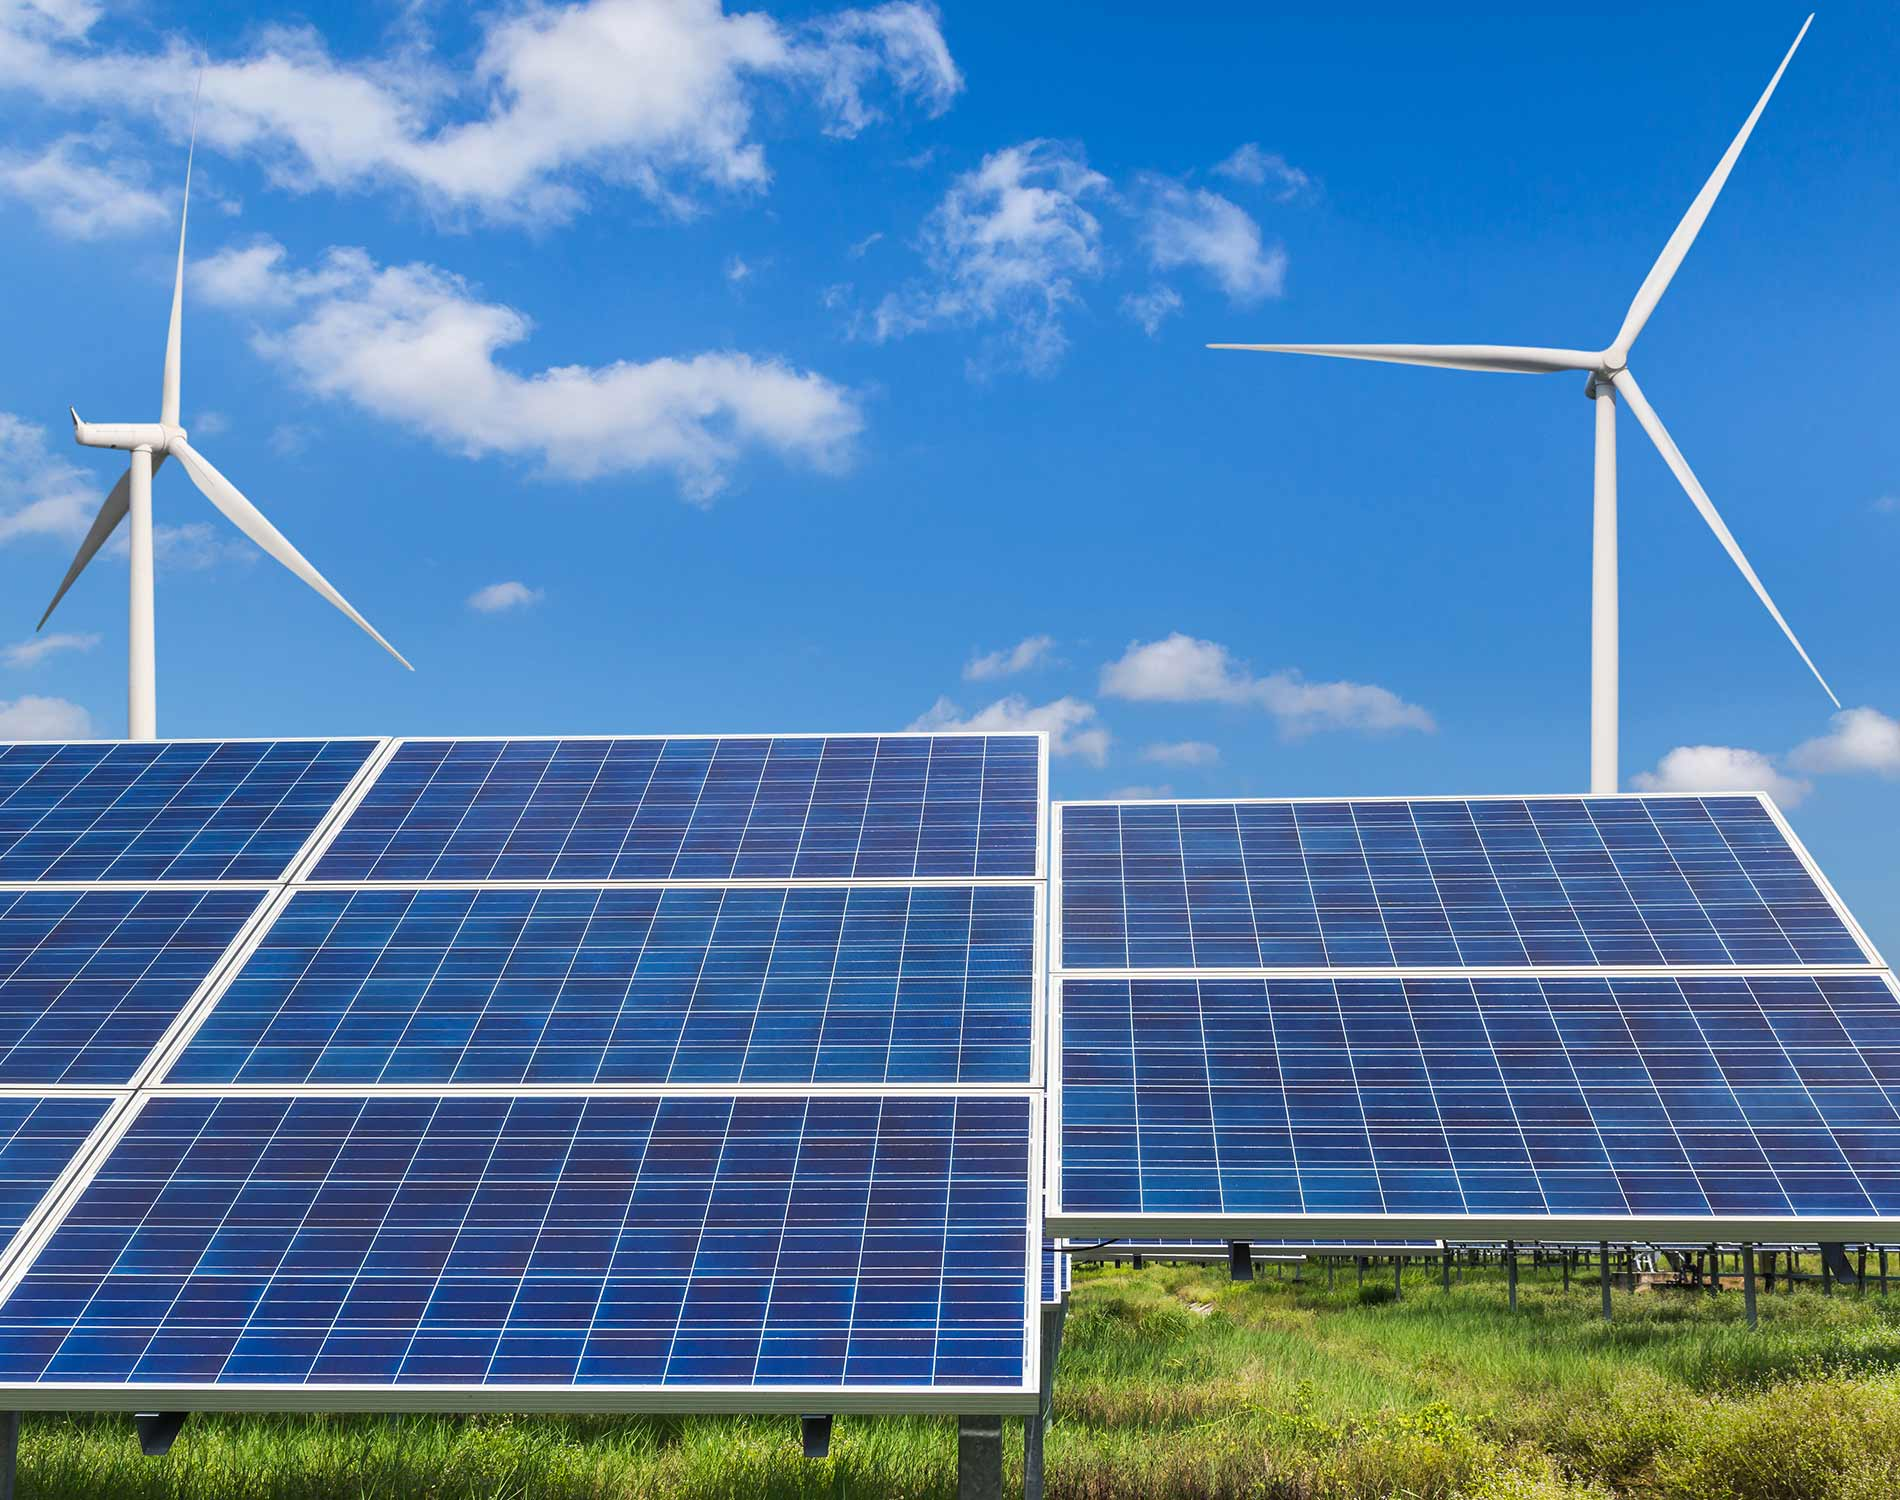 Wind turbines and solar panels